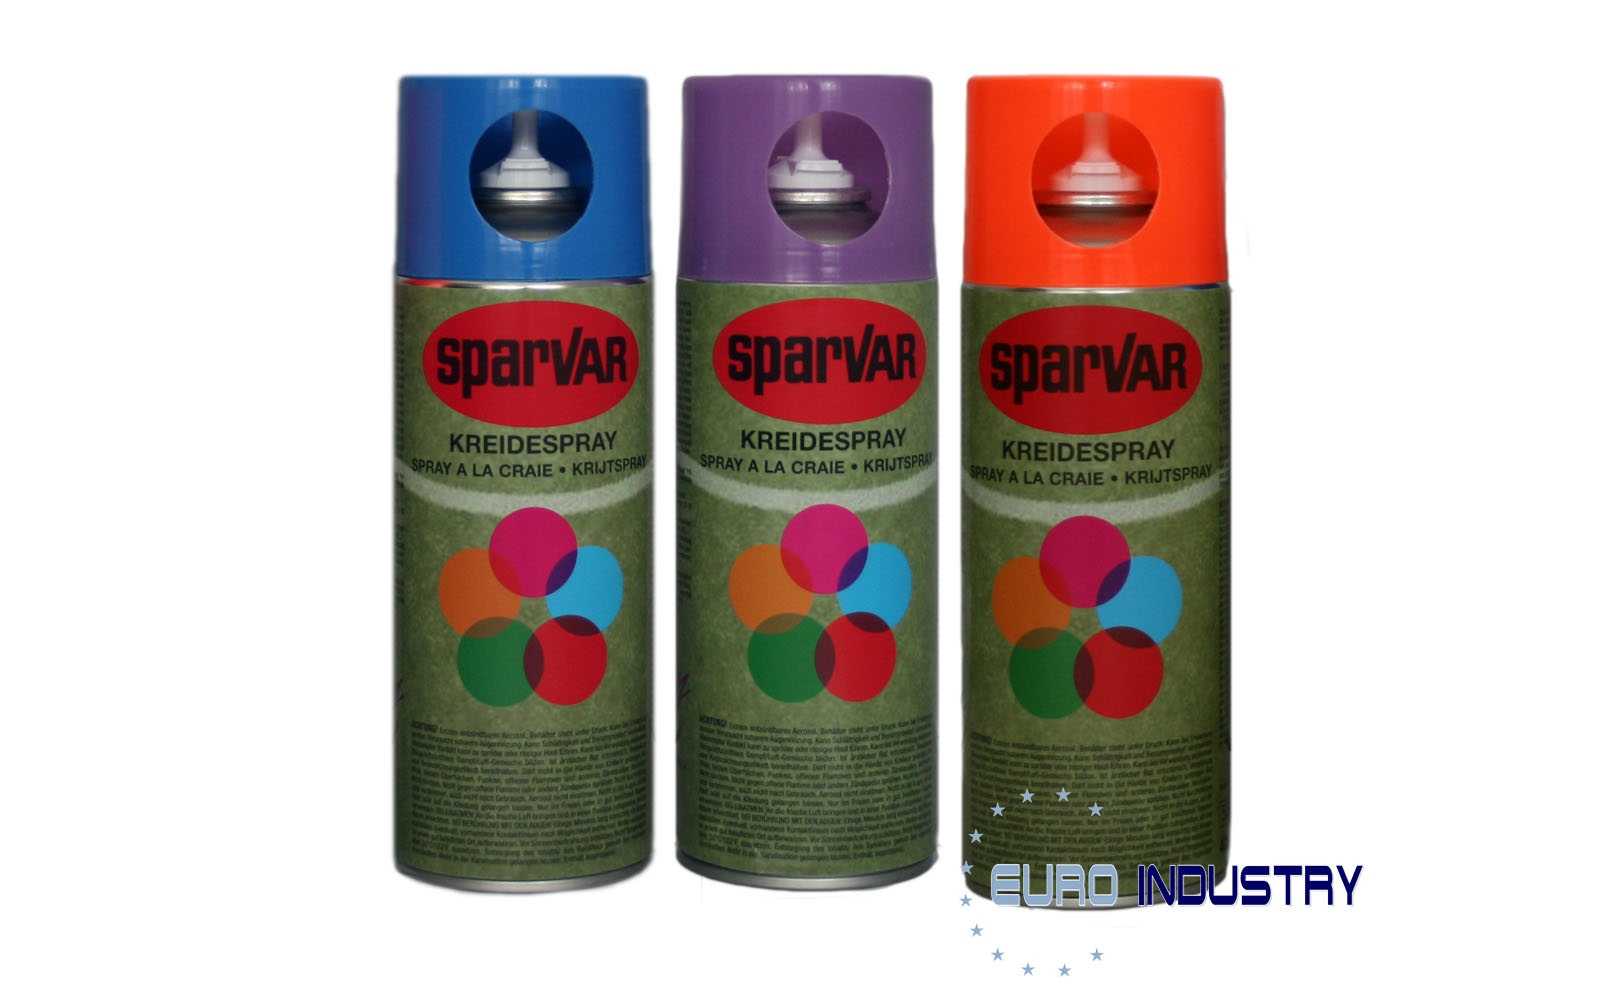 pics/Spray Color/sparvar_kreidespray_uek.jpg